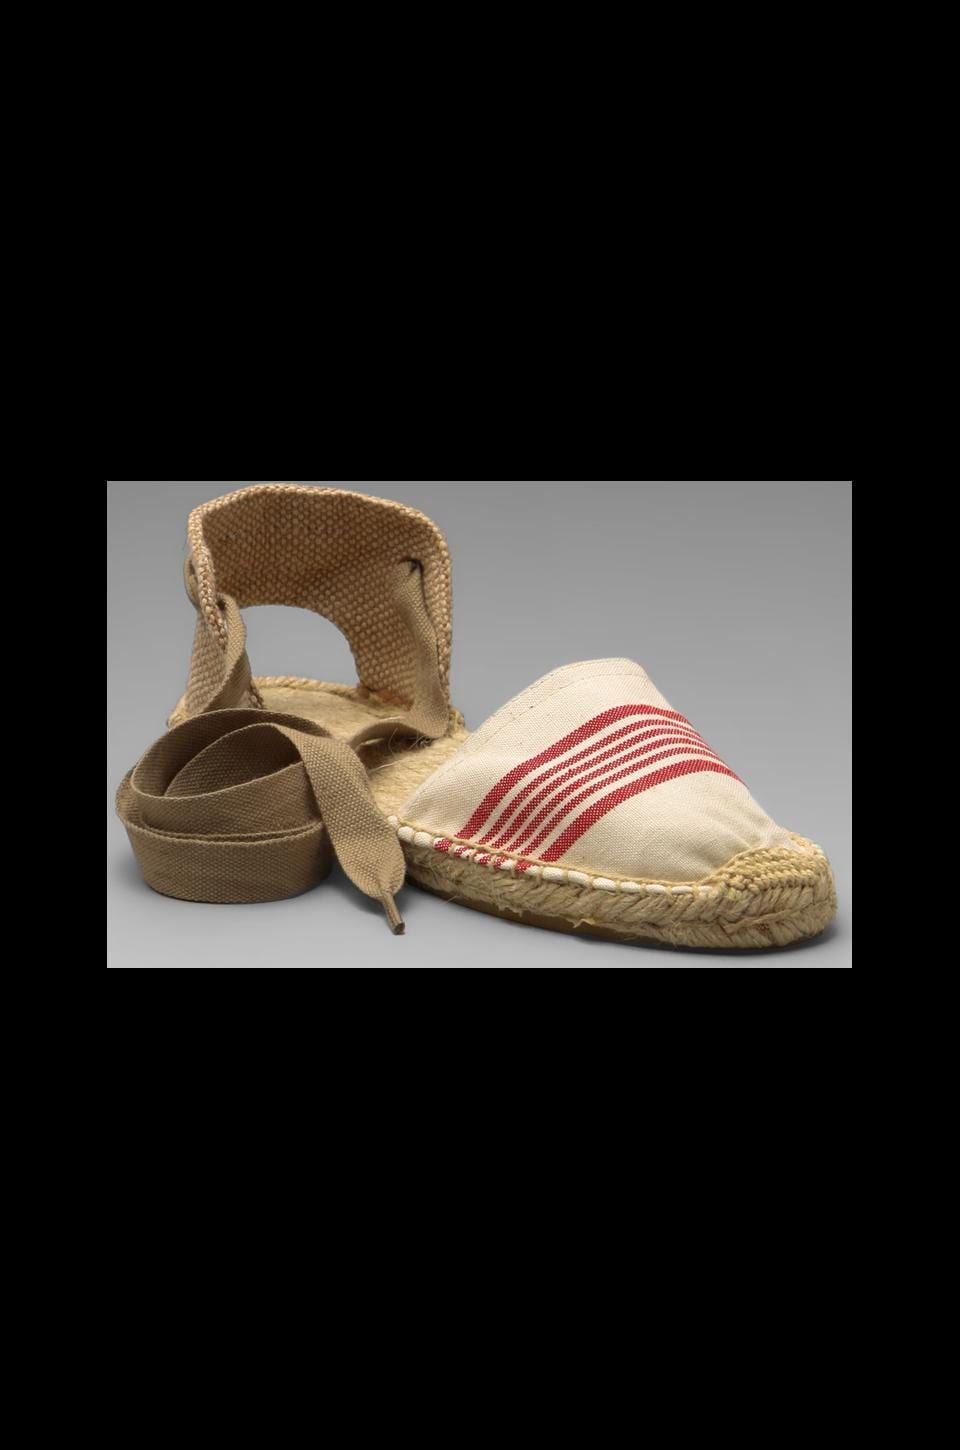 Soludos Stripe Sandal in Natural Red Closed